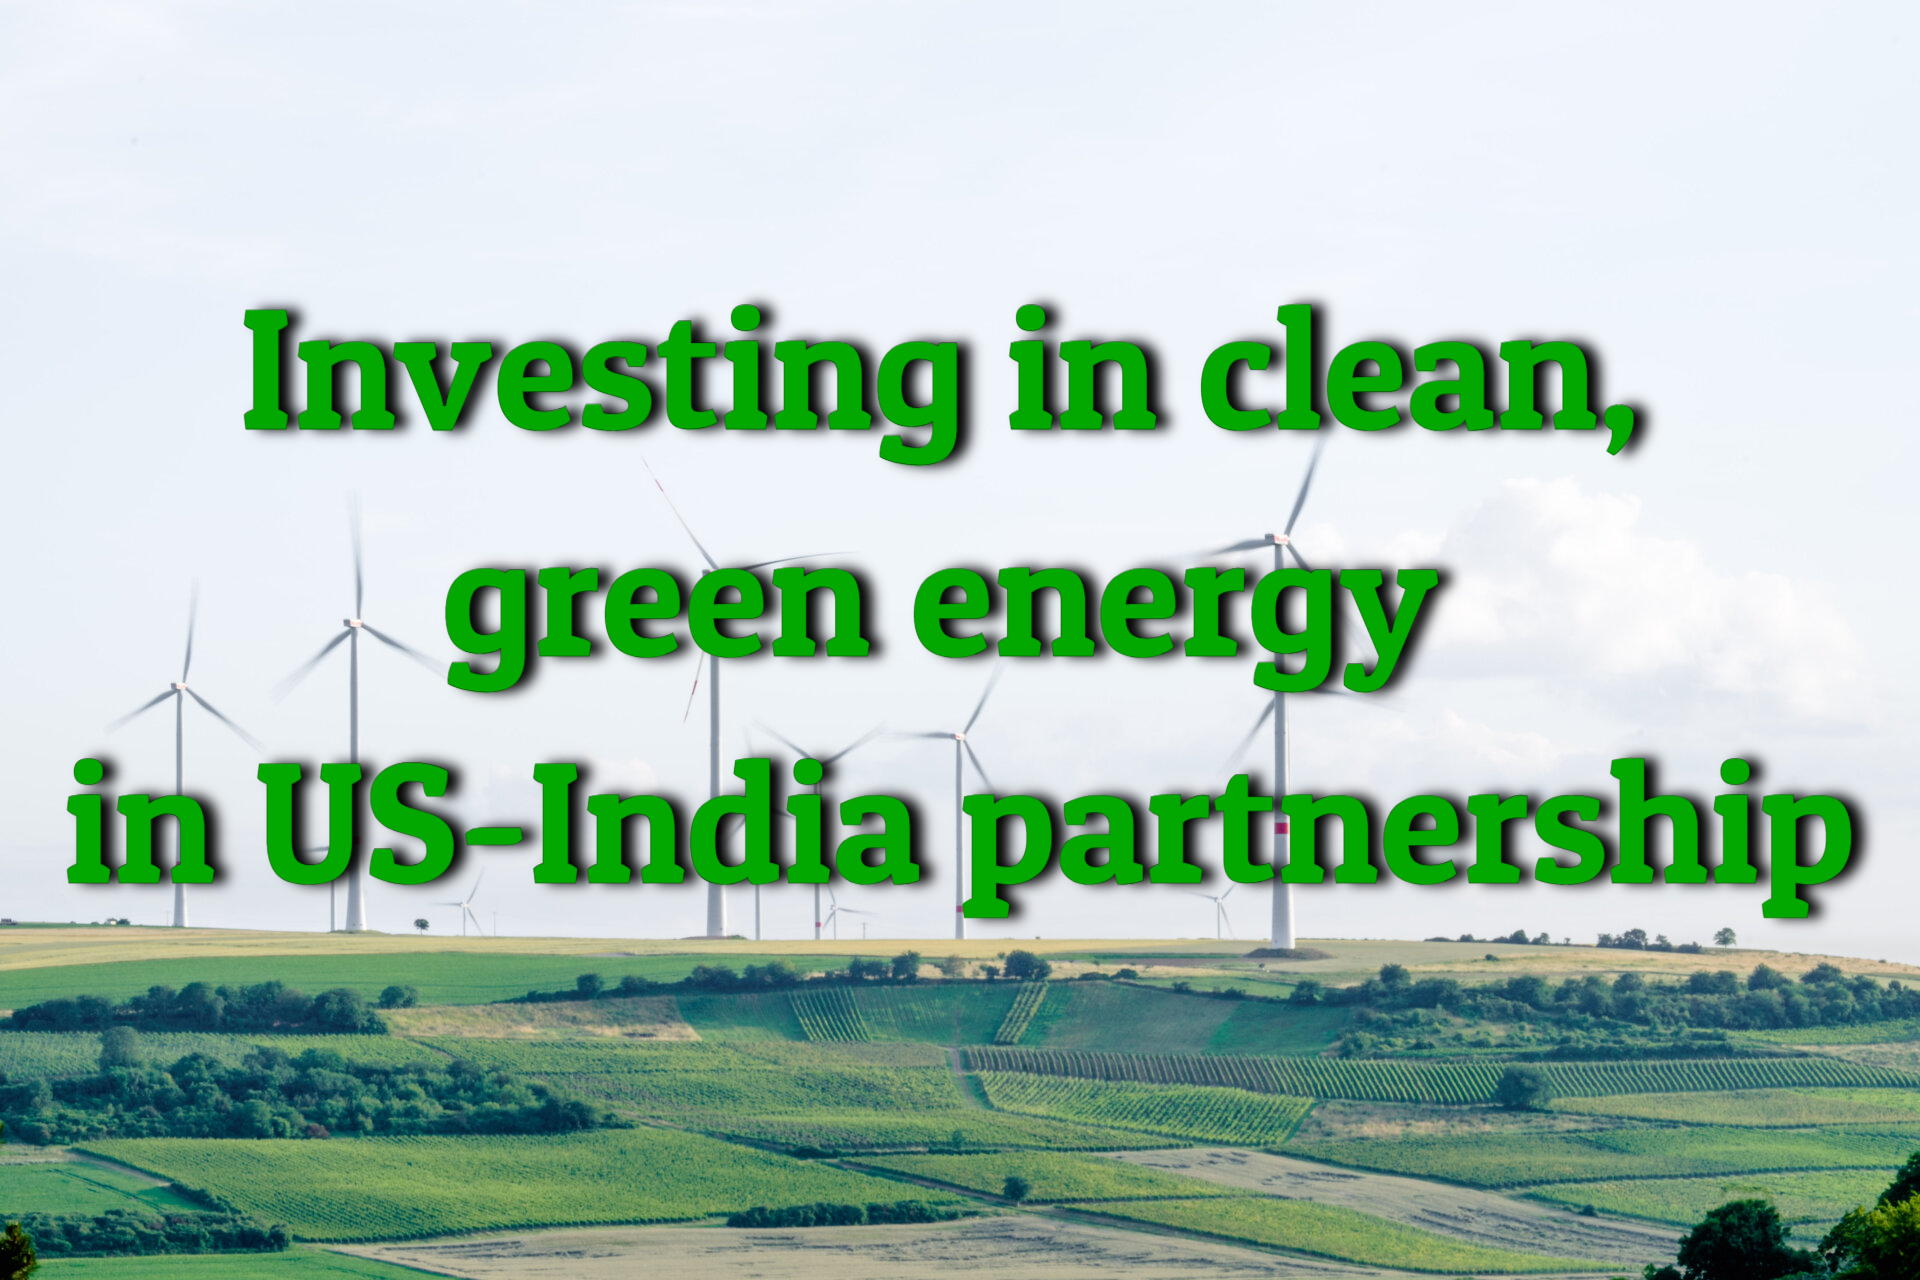 Clean, green energy to be the focus of US-India strategic partnership, Minister Jitendra Singh says